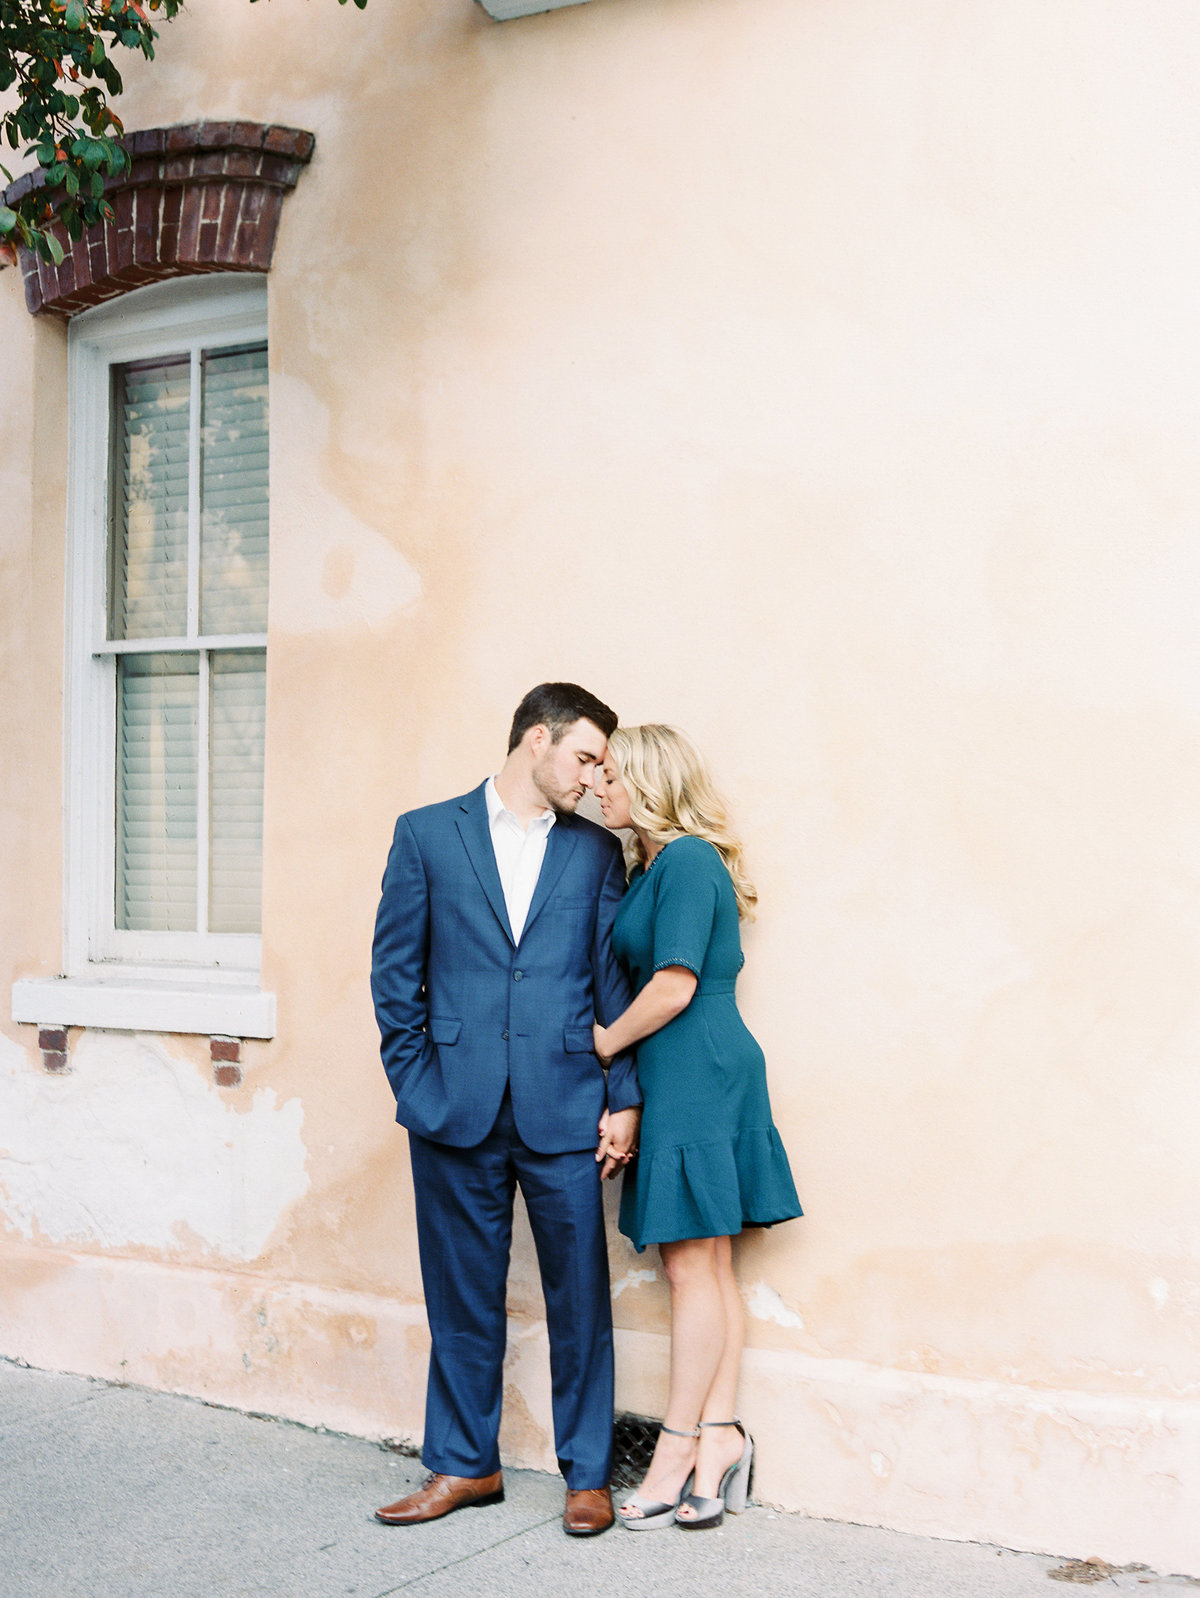 Walterboro-Beaufort-Downtown-Charleston-Engagement-18